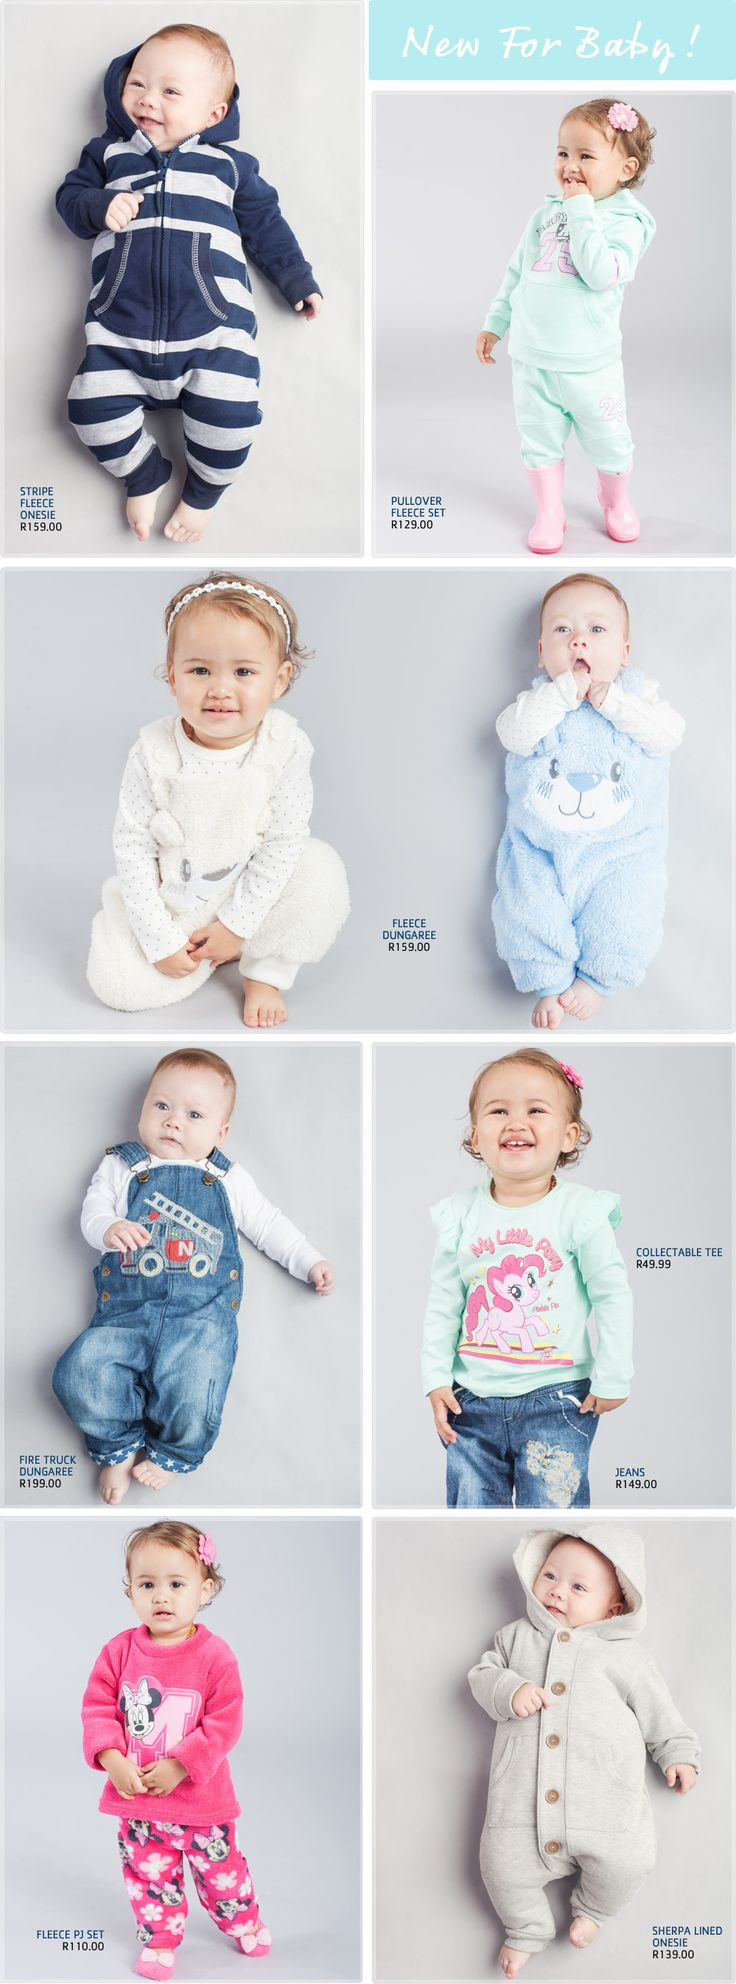 Clothing Baby - Pick n Pay A wide selection and collection of qualitybaby clothesandnewborn clothing. From fleece wear to snowsuit. See how these winter warmersmeet little prices